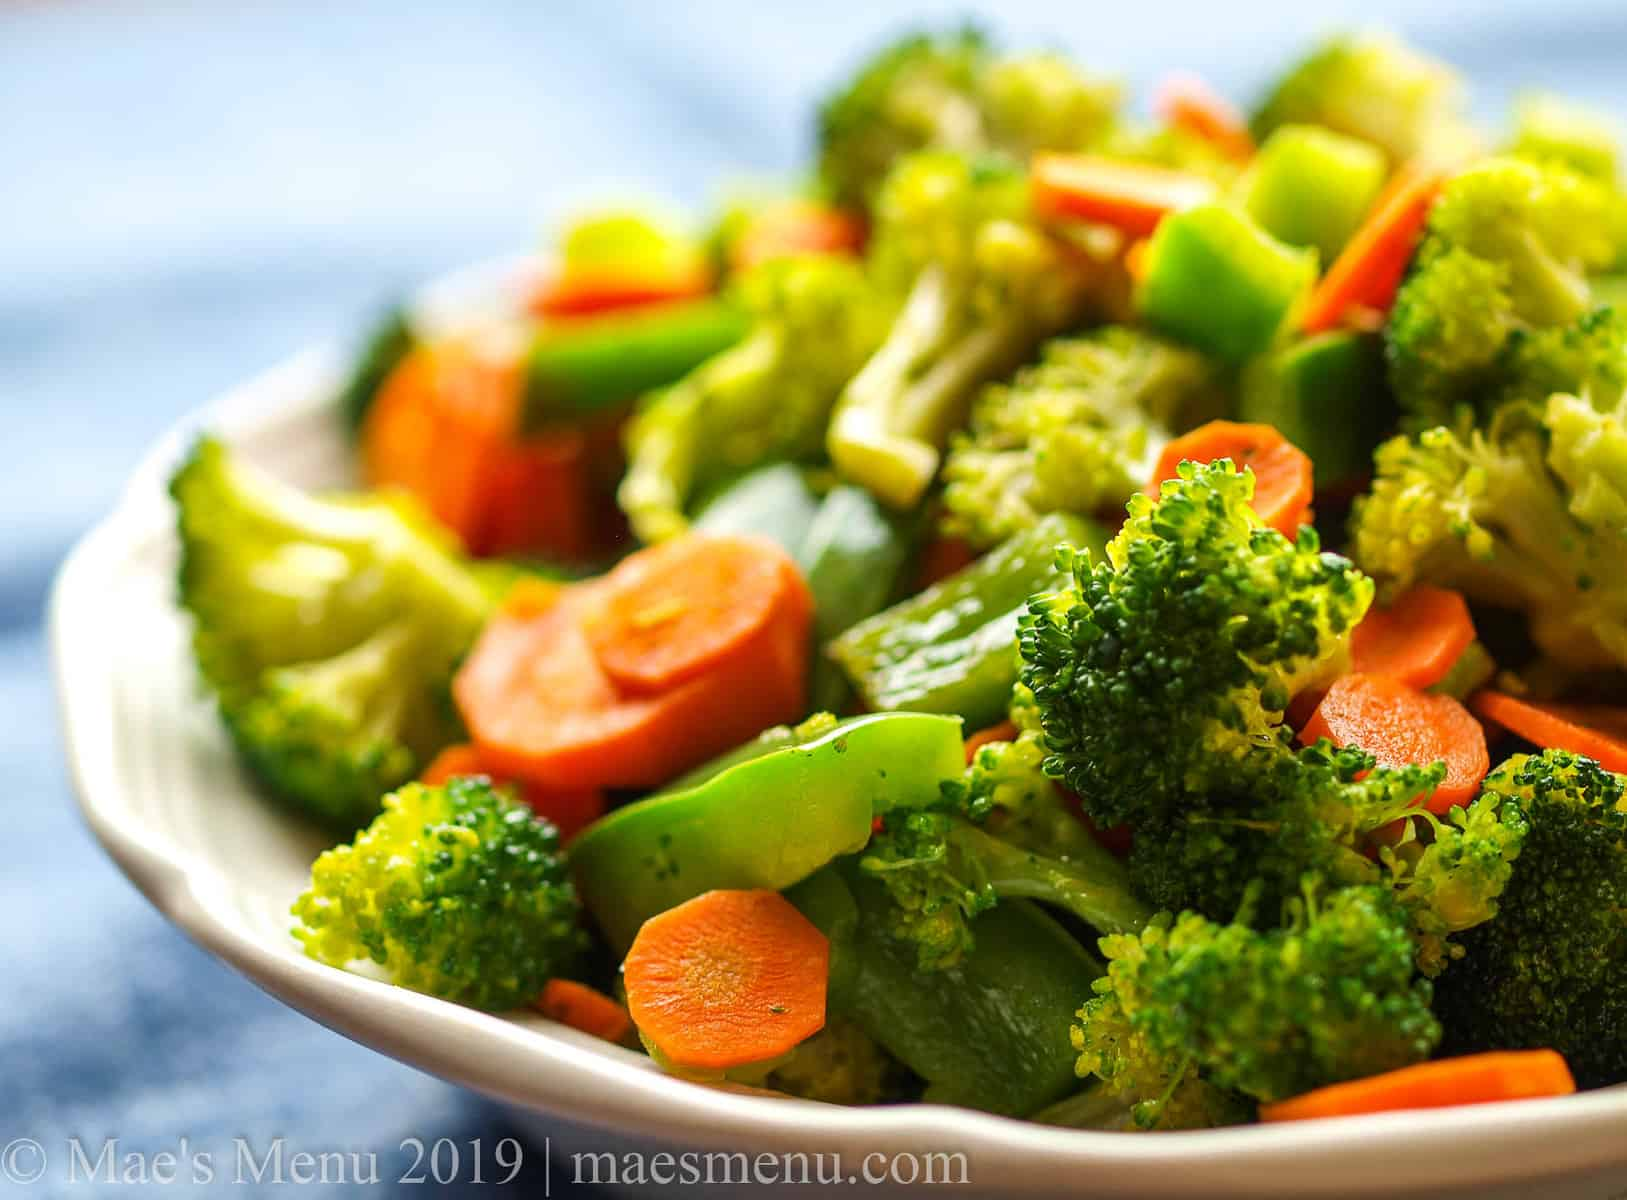 A large bowl of sauteed veggies.